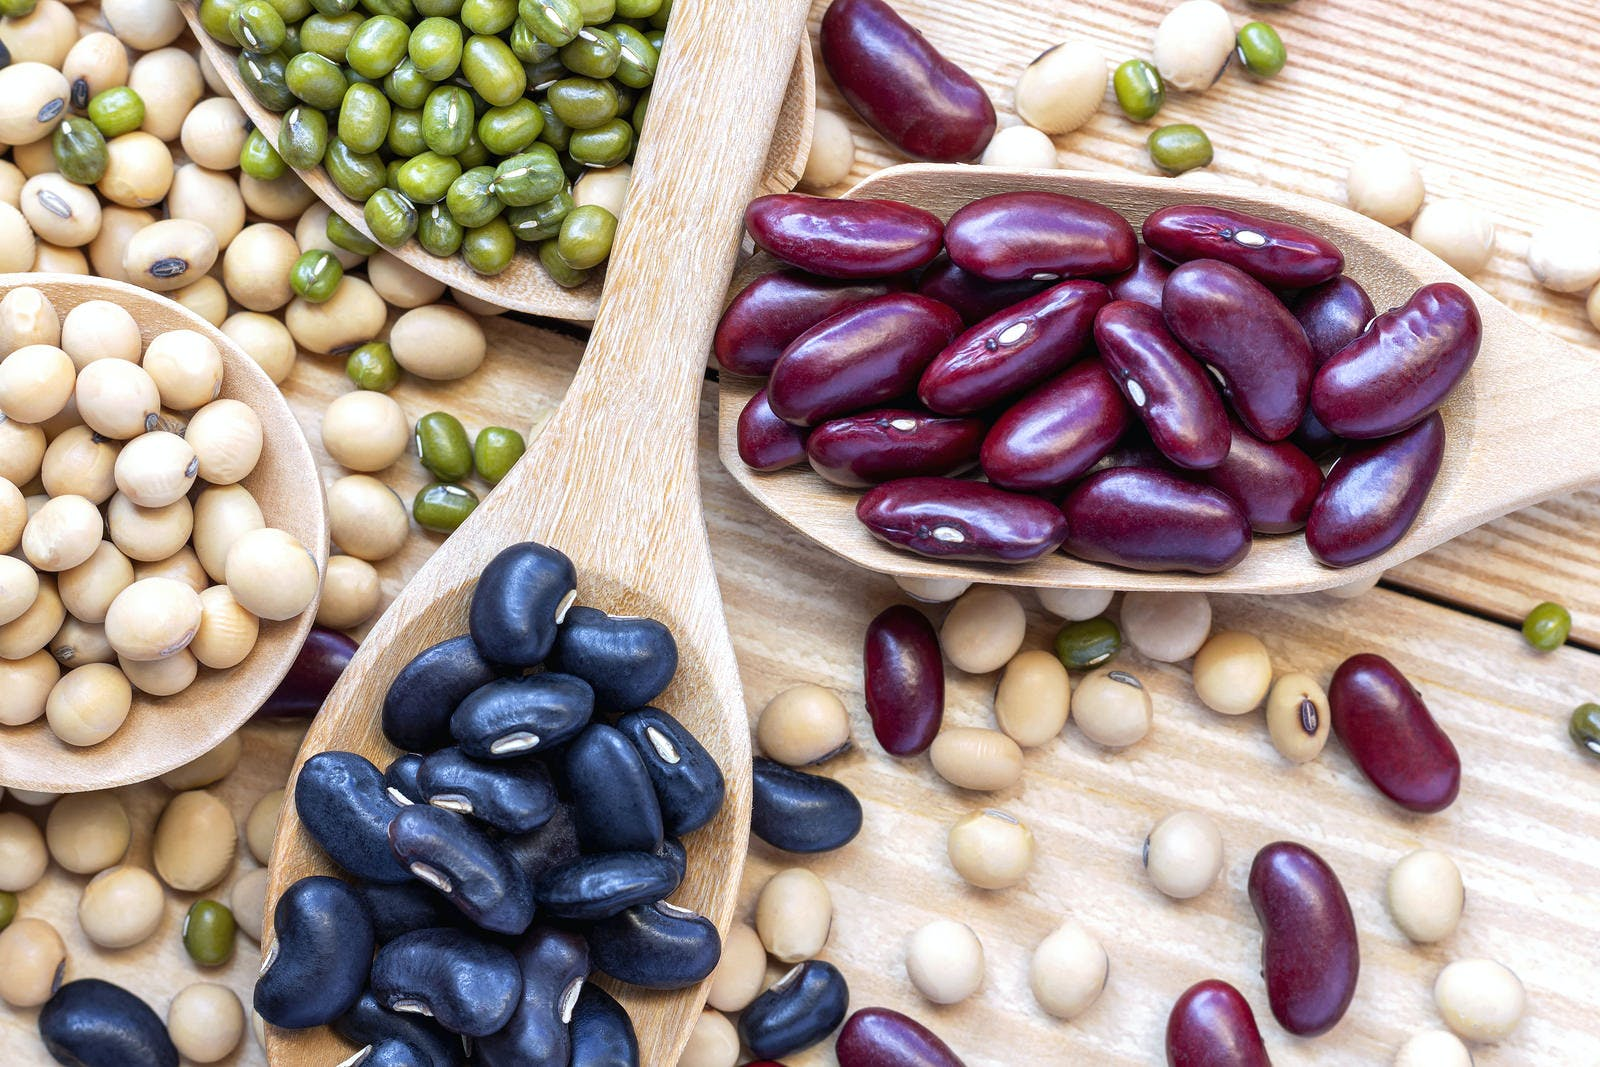 Many types of beans are separated in a spoon on a wood table such as mung bean, soybean, black bean, red bean. Leguminous plant native to Asia, widely cultivated for its edible seeds.